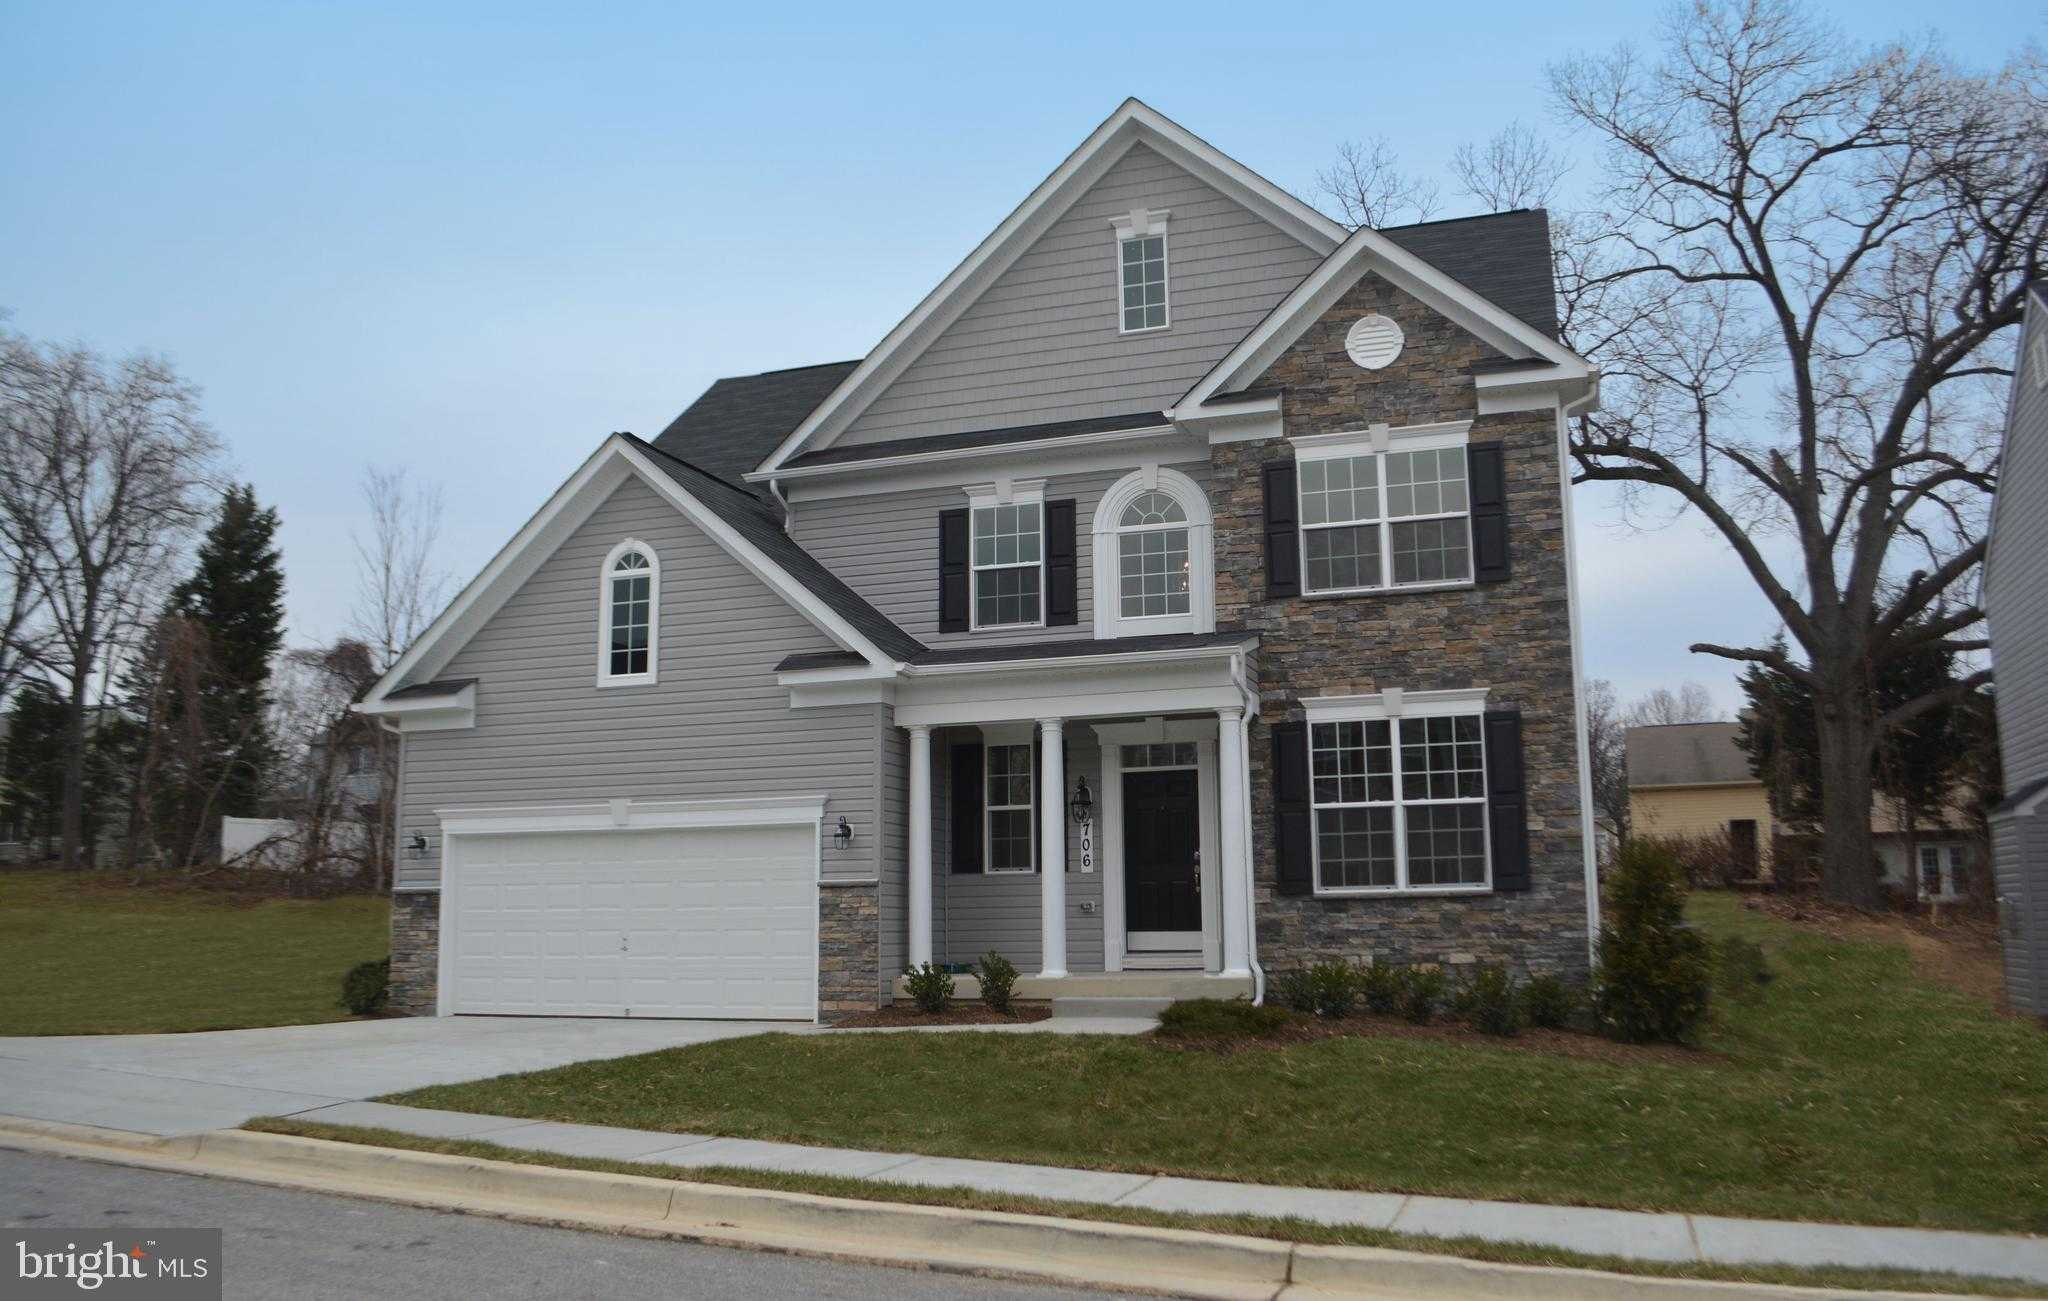 $599,475 - 4Br/3Ba -  for Sale in None Available, Severna Park